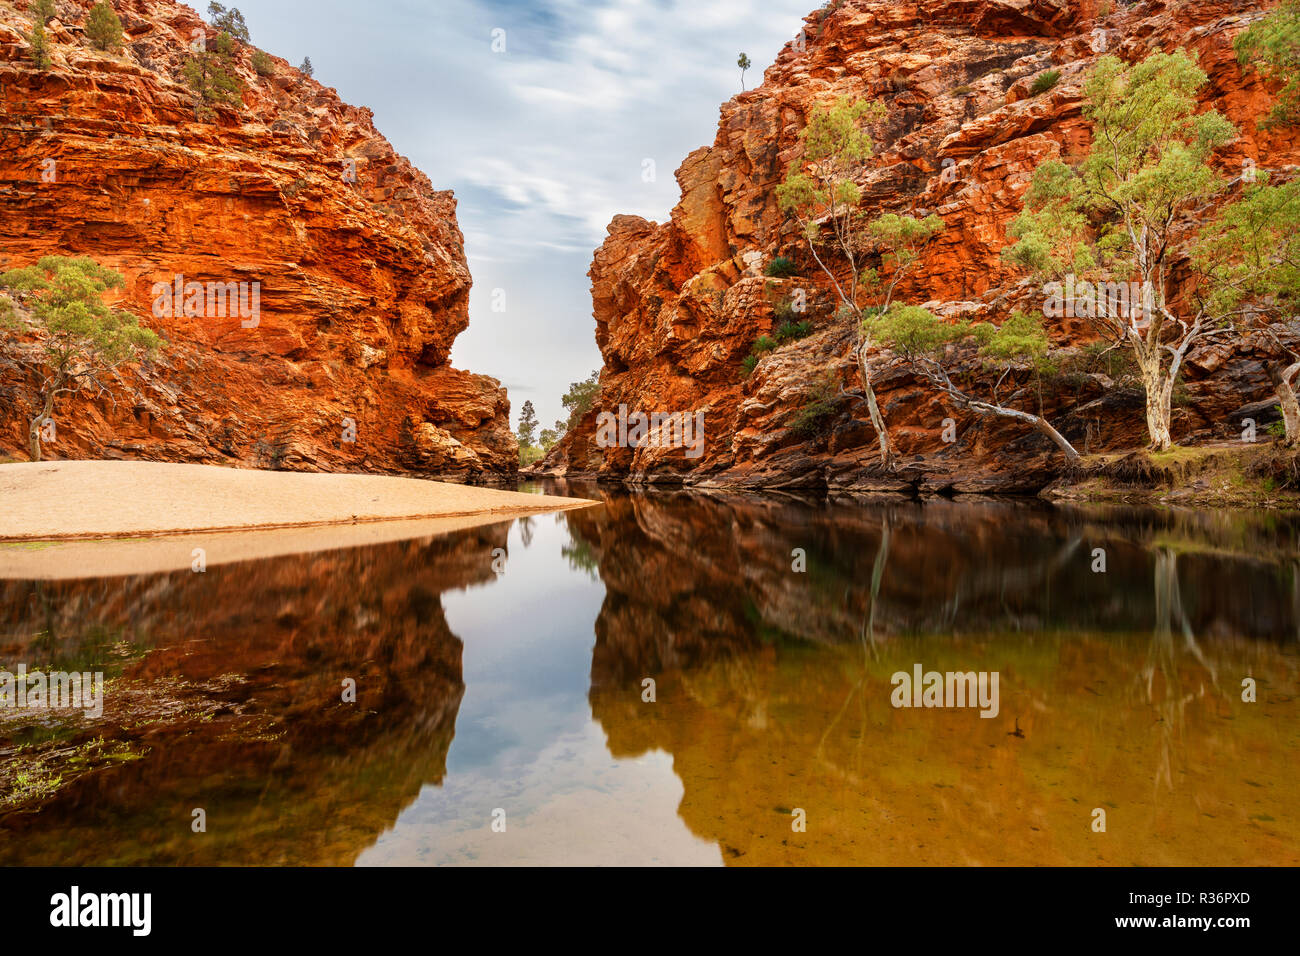 Famous Ellery Creek Big Hole in MacDonnell Ranges. - Stock Image